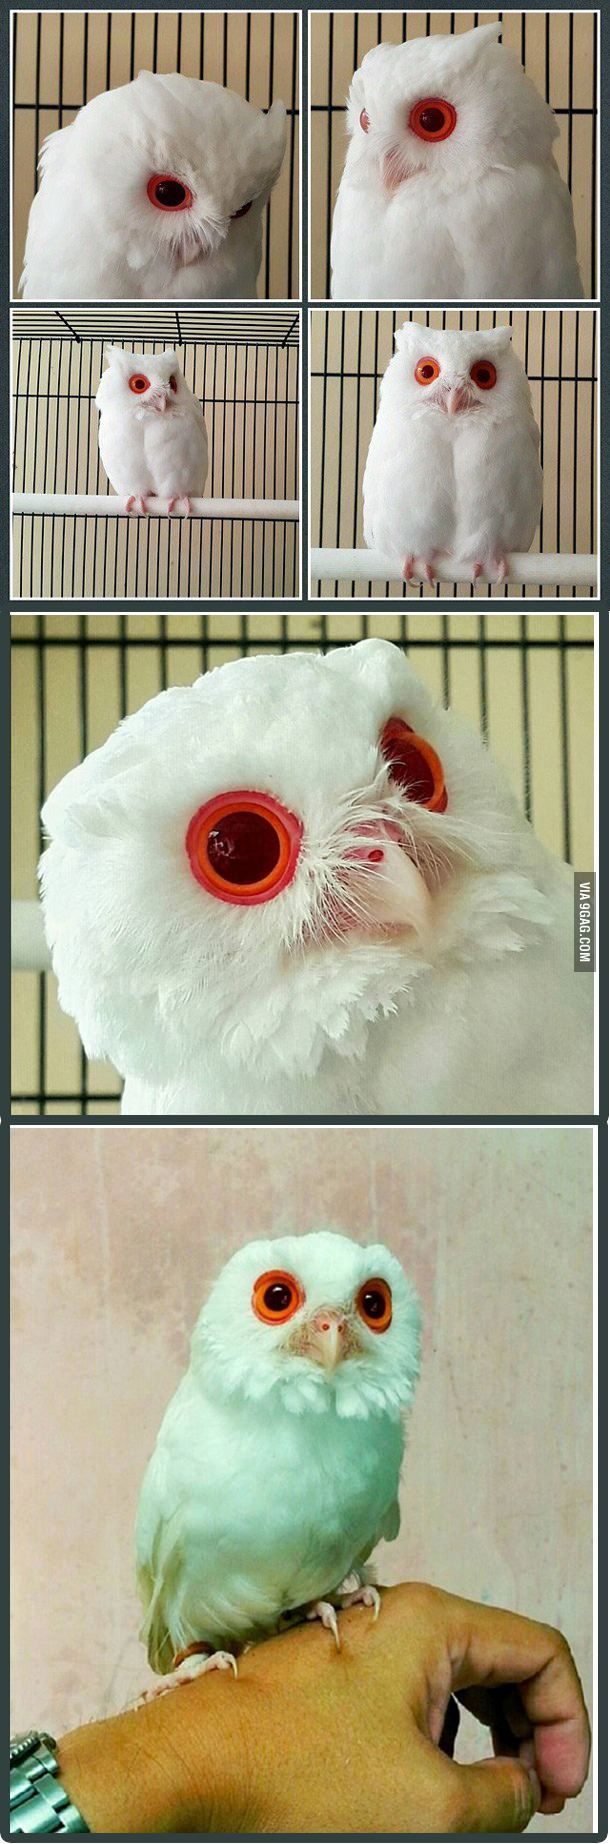 Photo of Owl albino with red eyes.